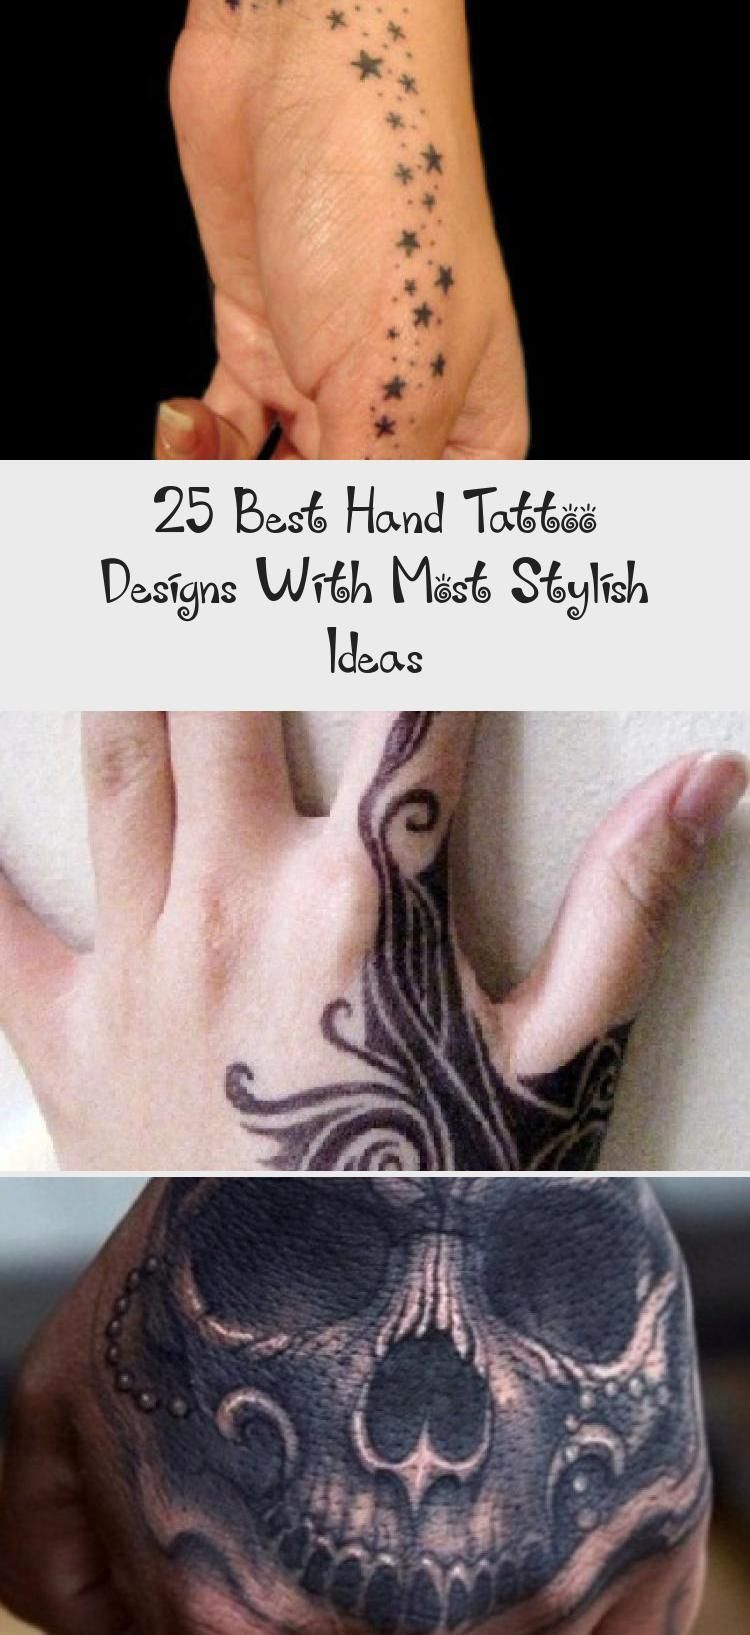 25 Best Meaningful Hand Tattoo Designs for Men and Women